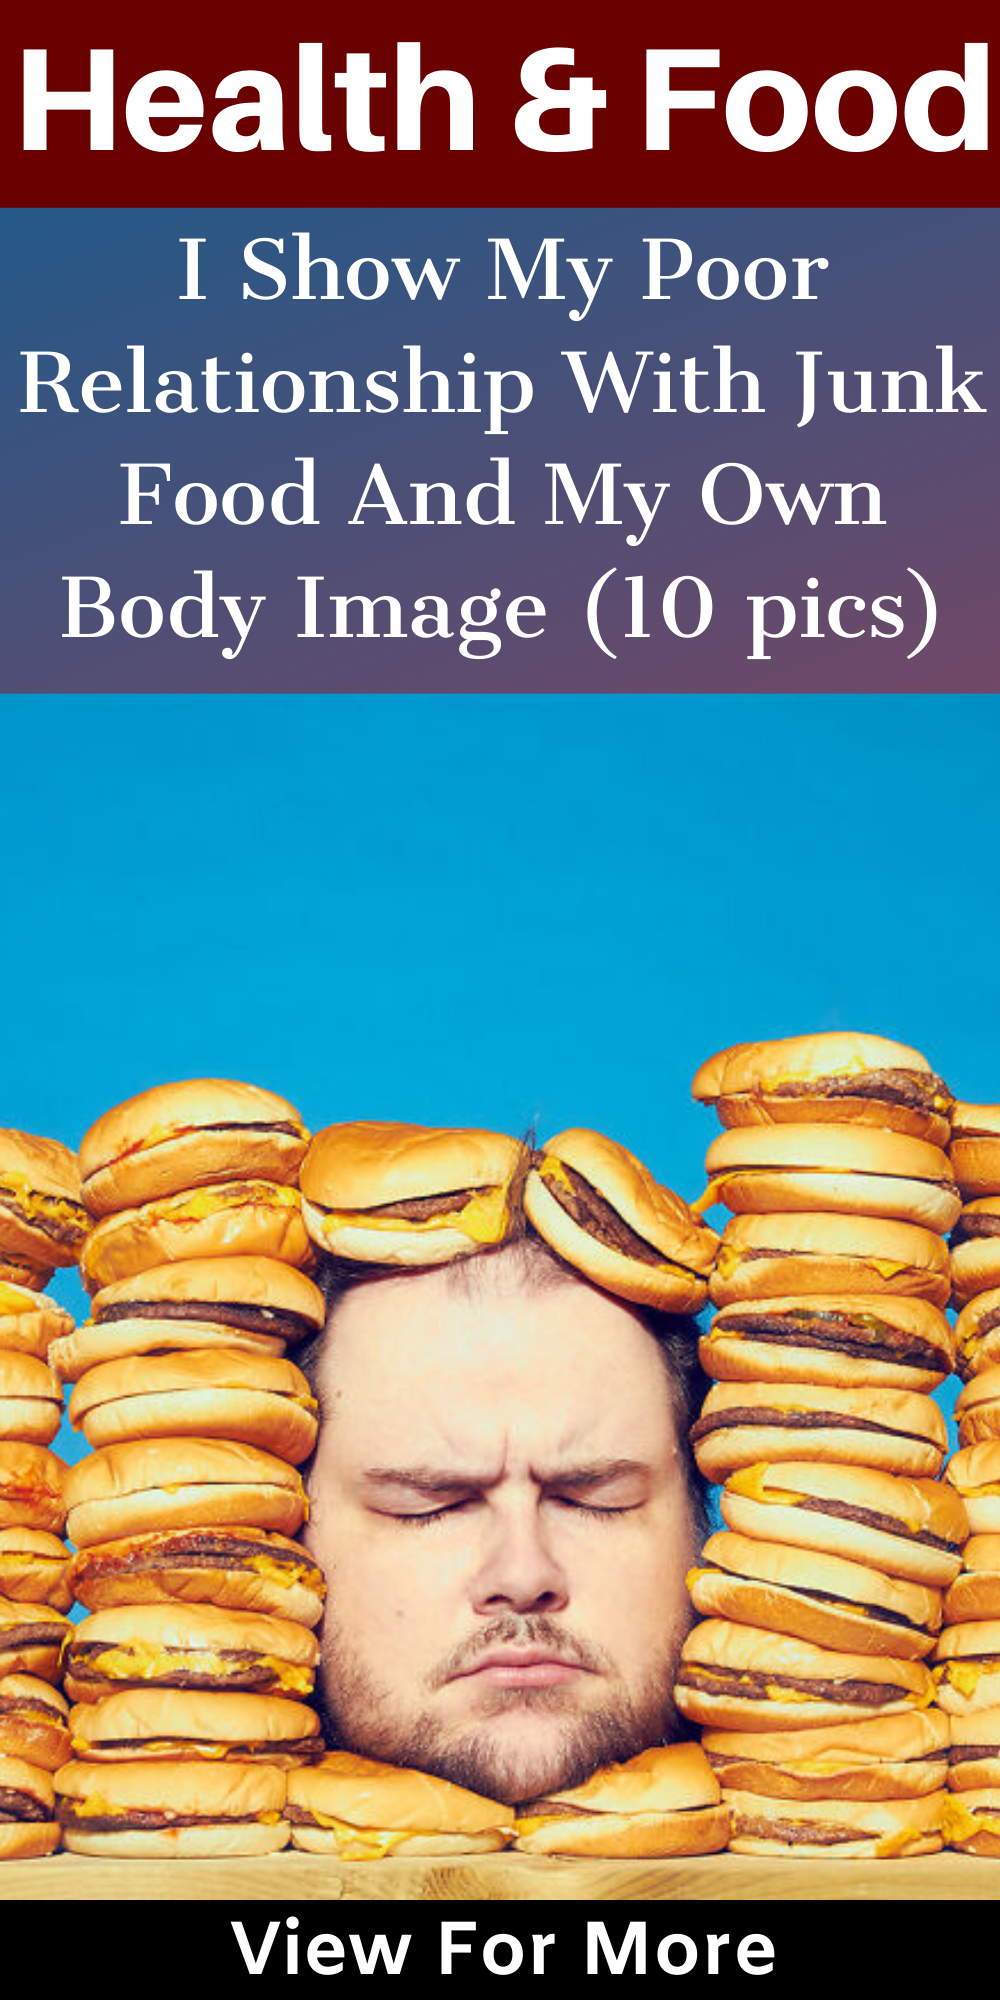 I Show My Poor Relationship With Junk Food And My Own Body Image 10 Pics Health Food Food Unhealthy Food